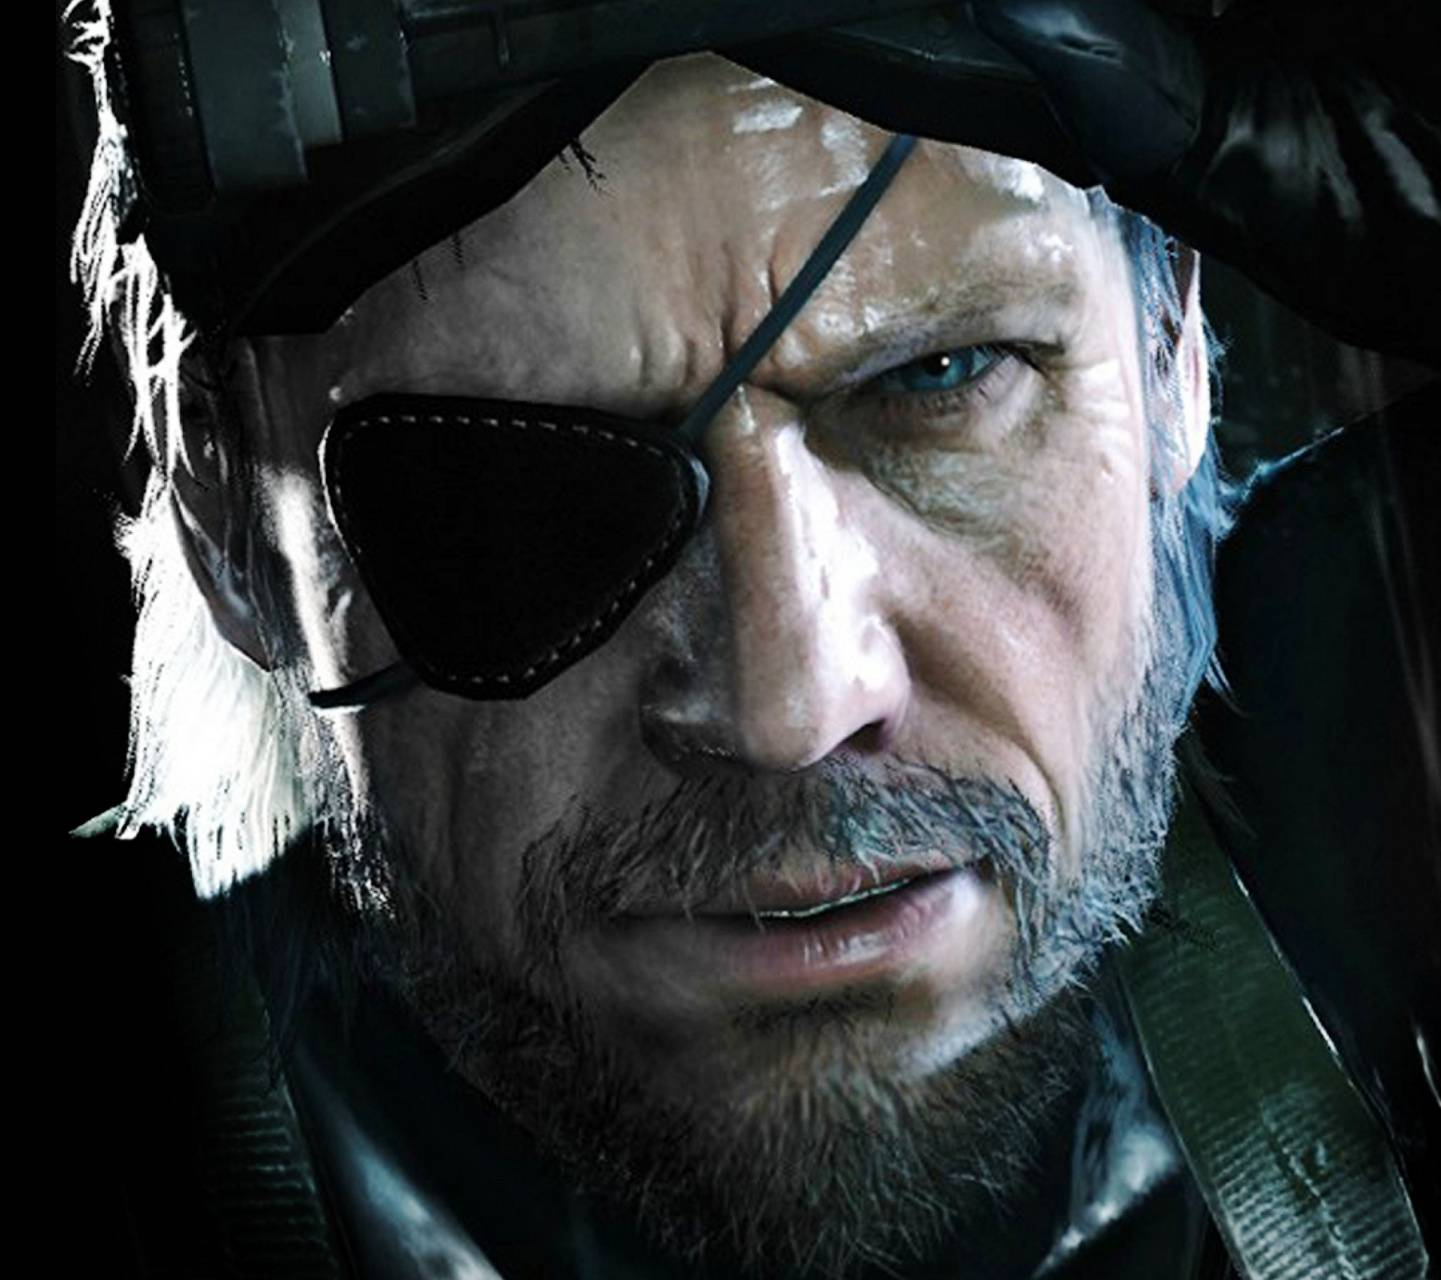 Metal Gear Solid 5 Wallpaper By Samantha80 77 Free On Zedge